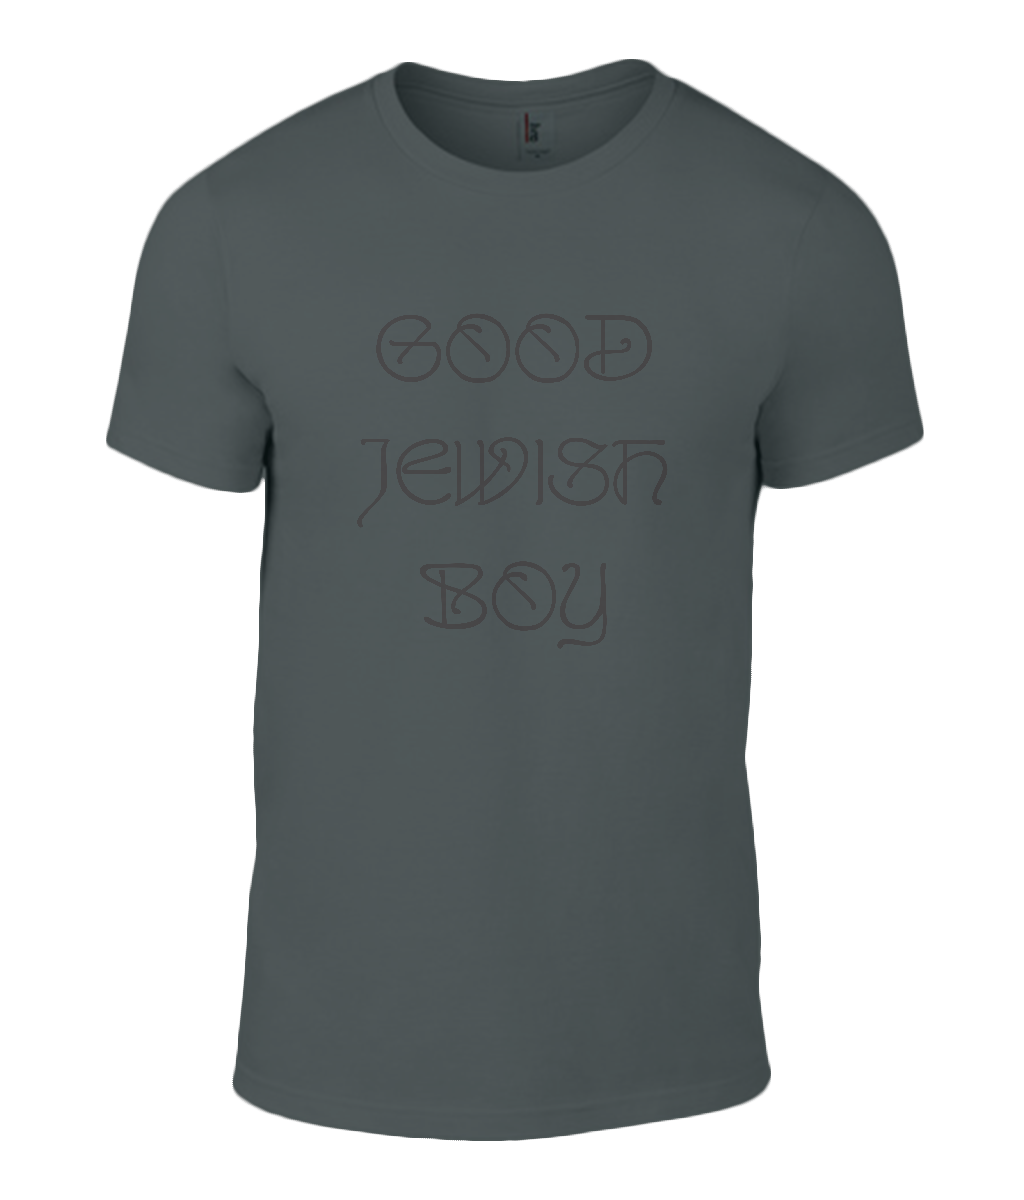 Round Neck T-Shirt - Good Jewish Boy - Lokshen Pudding UK - Black